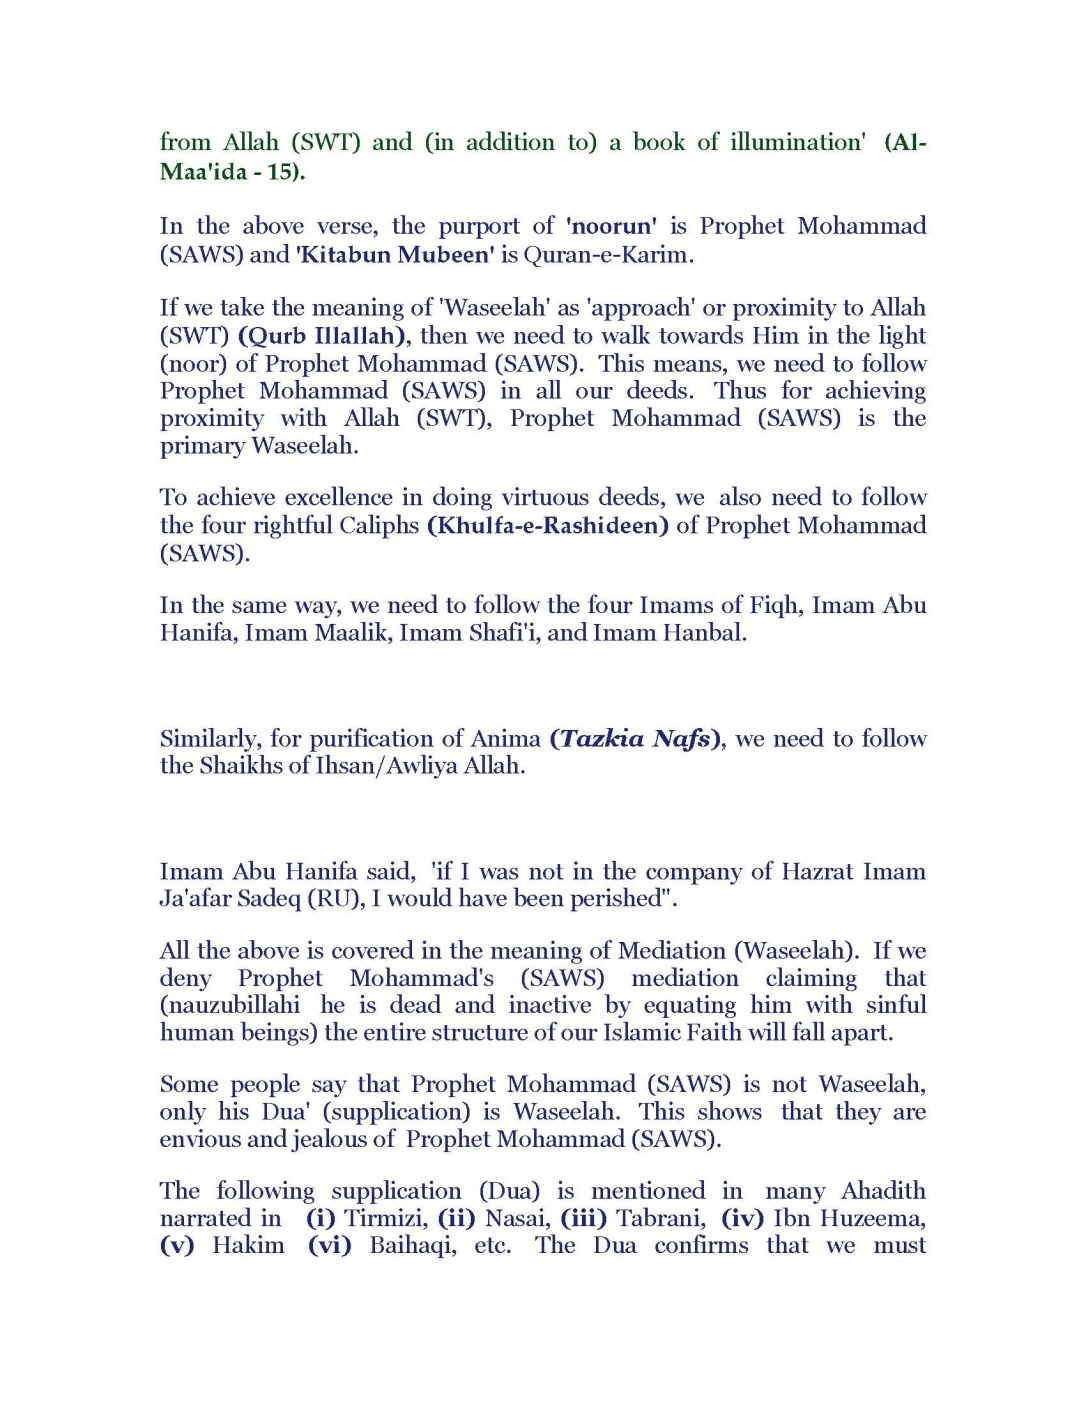 waseela_Page_02